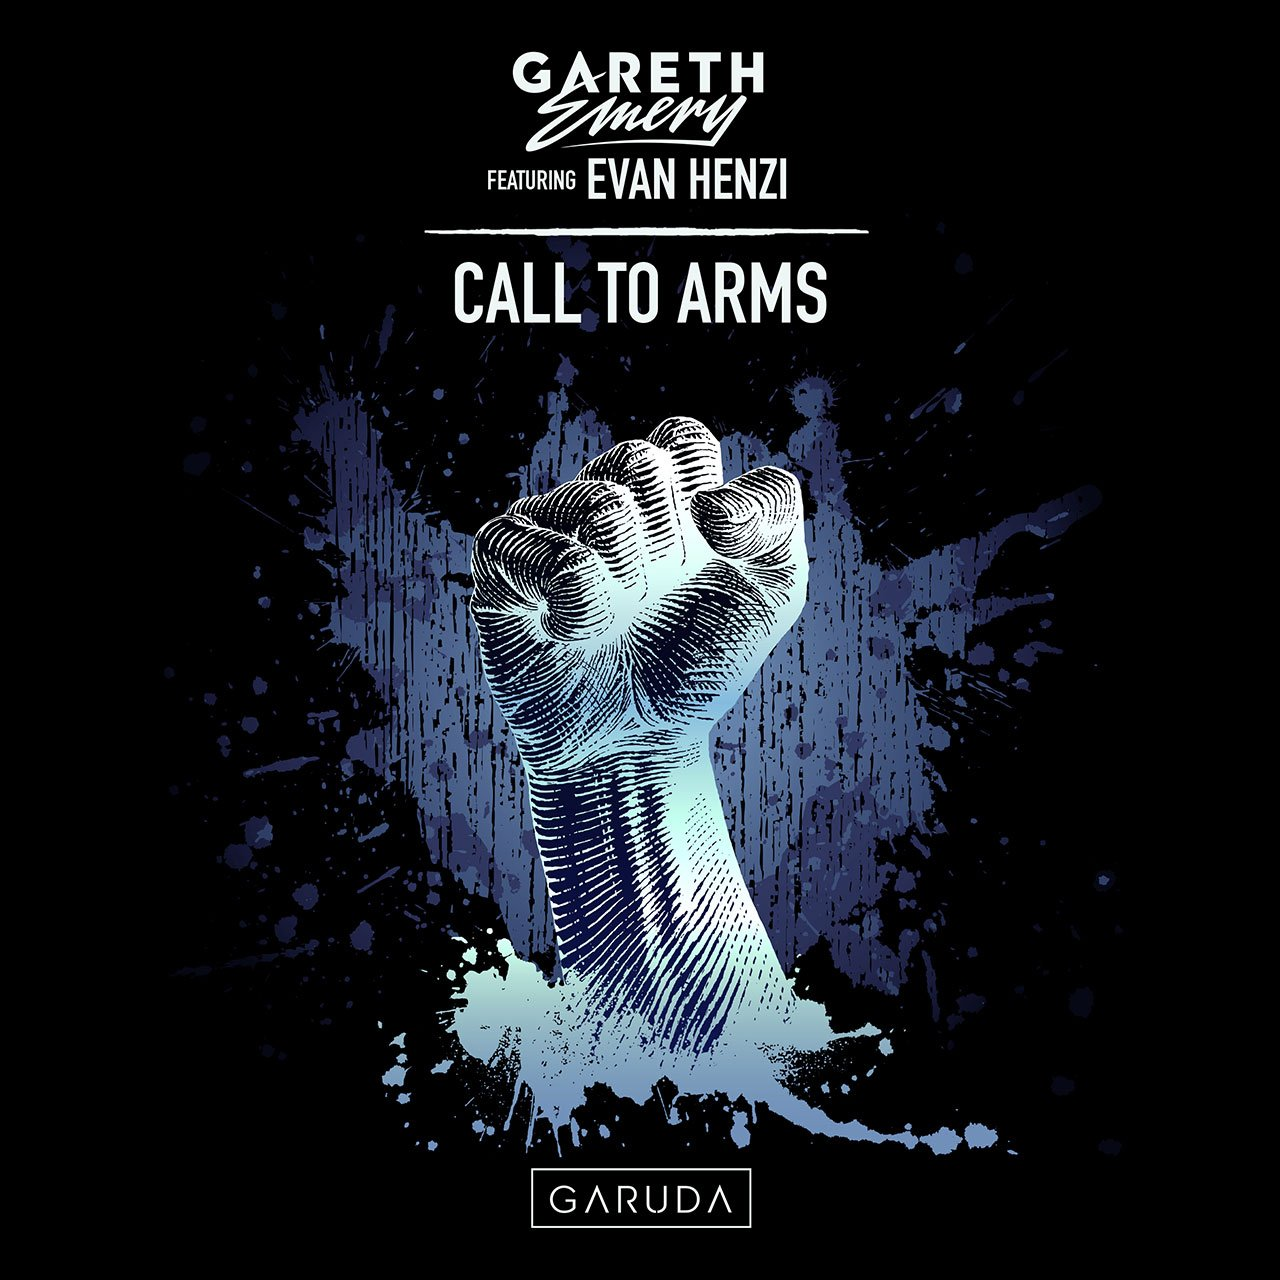 Gareth Emery 'Call to Arms' feat. Evan Henzi